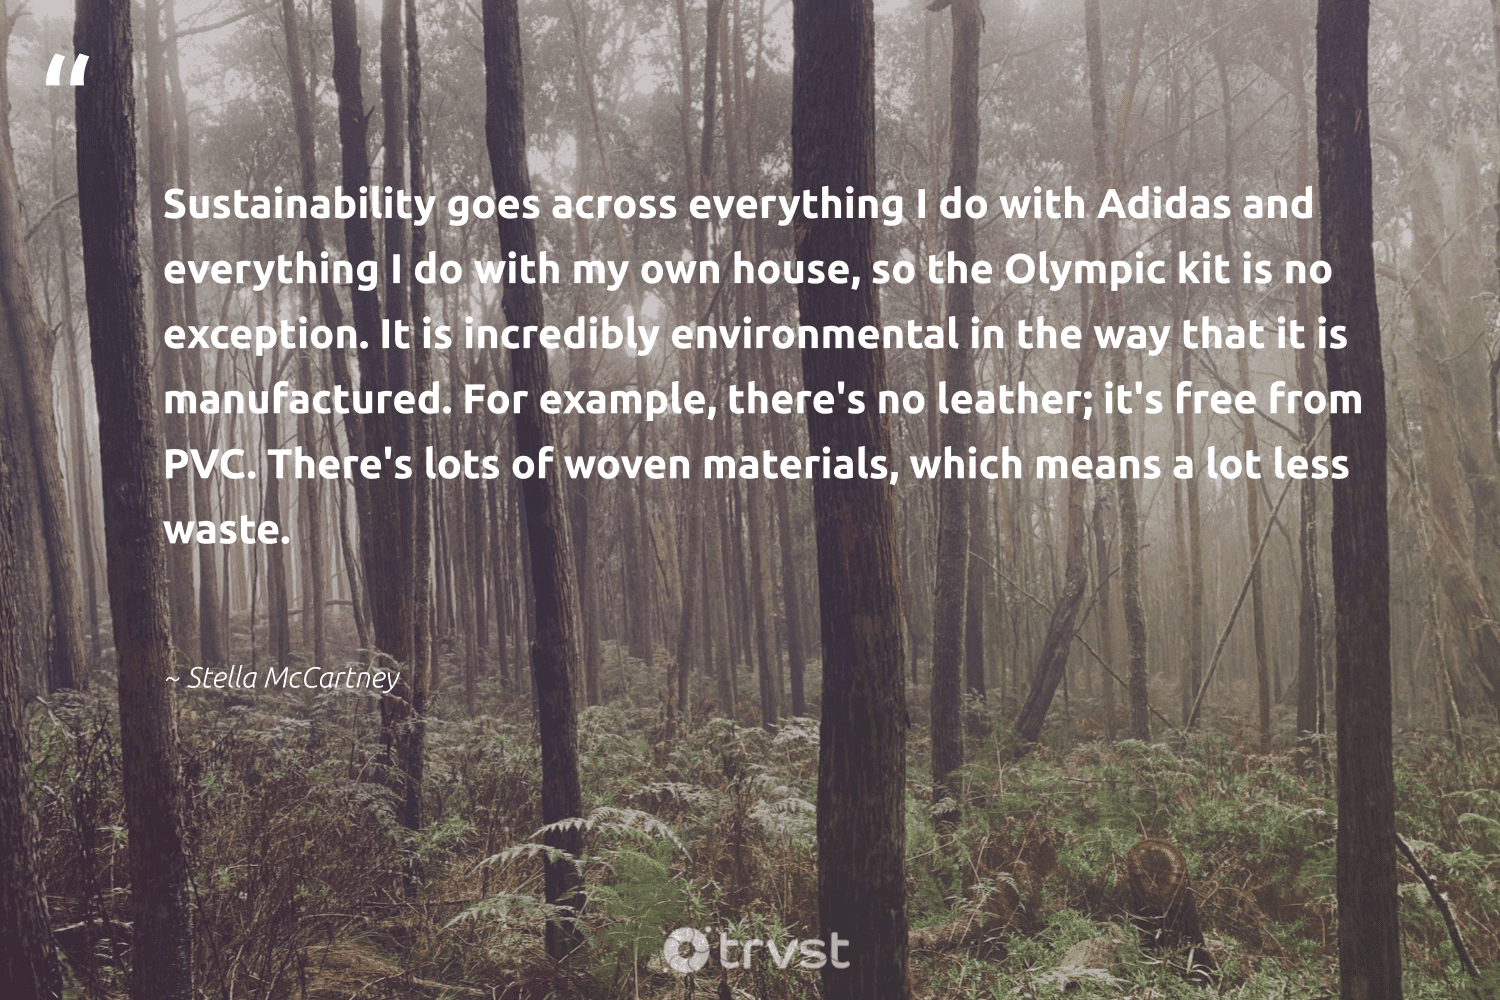 """""""Sustainability goes across everything I do with Adidas and everything I do with my own house, so the Olympic kit is no exception. It is incredibly environmental in the way that it is manufactured. For example, there's no leather; it's free from PVC. There's lots of woven materials, which means a lot less waste.""""  - Stella McCartney #trvst #quotes #sustainability #waste #environmental #sustainableliving #fashion #greenliving #bethechange #ecofriendly #sustainable #green"""